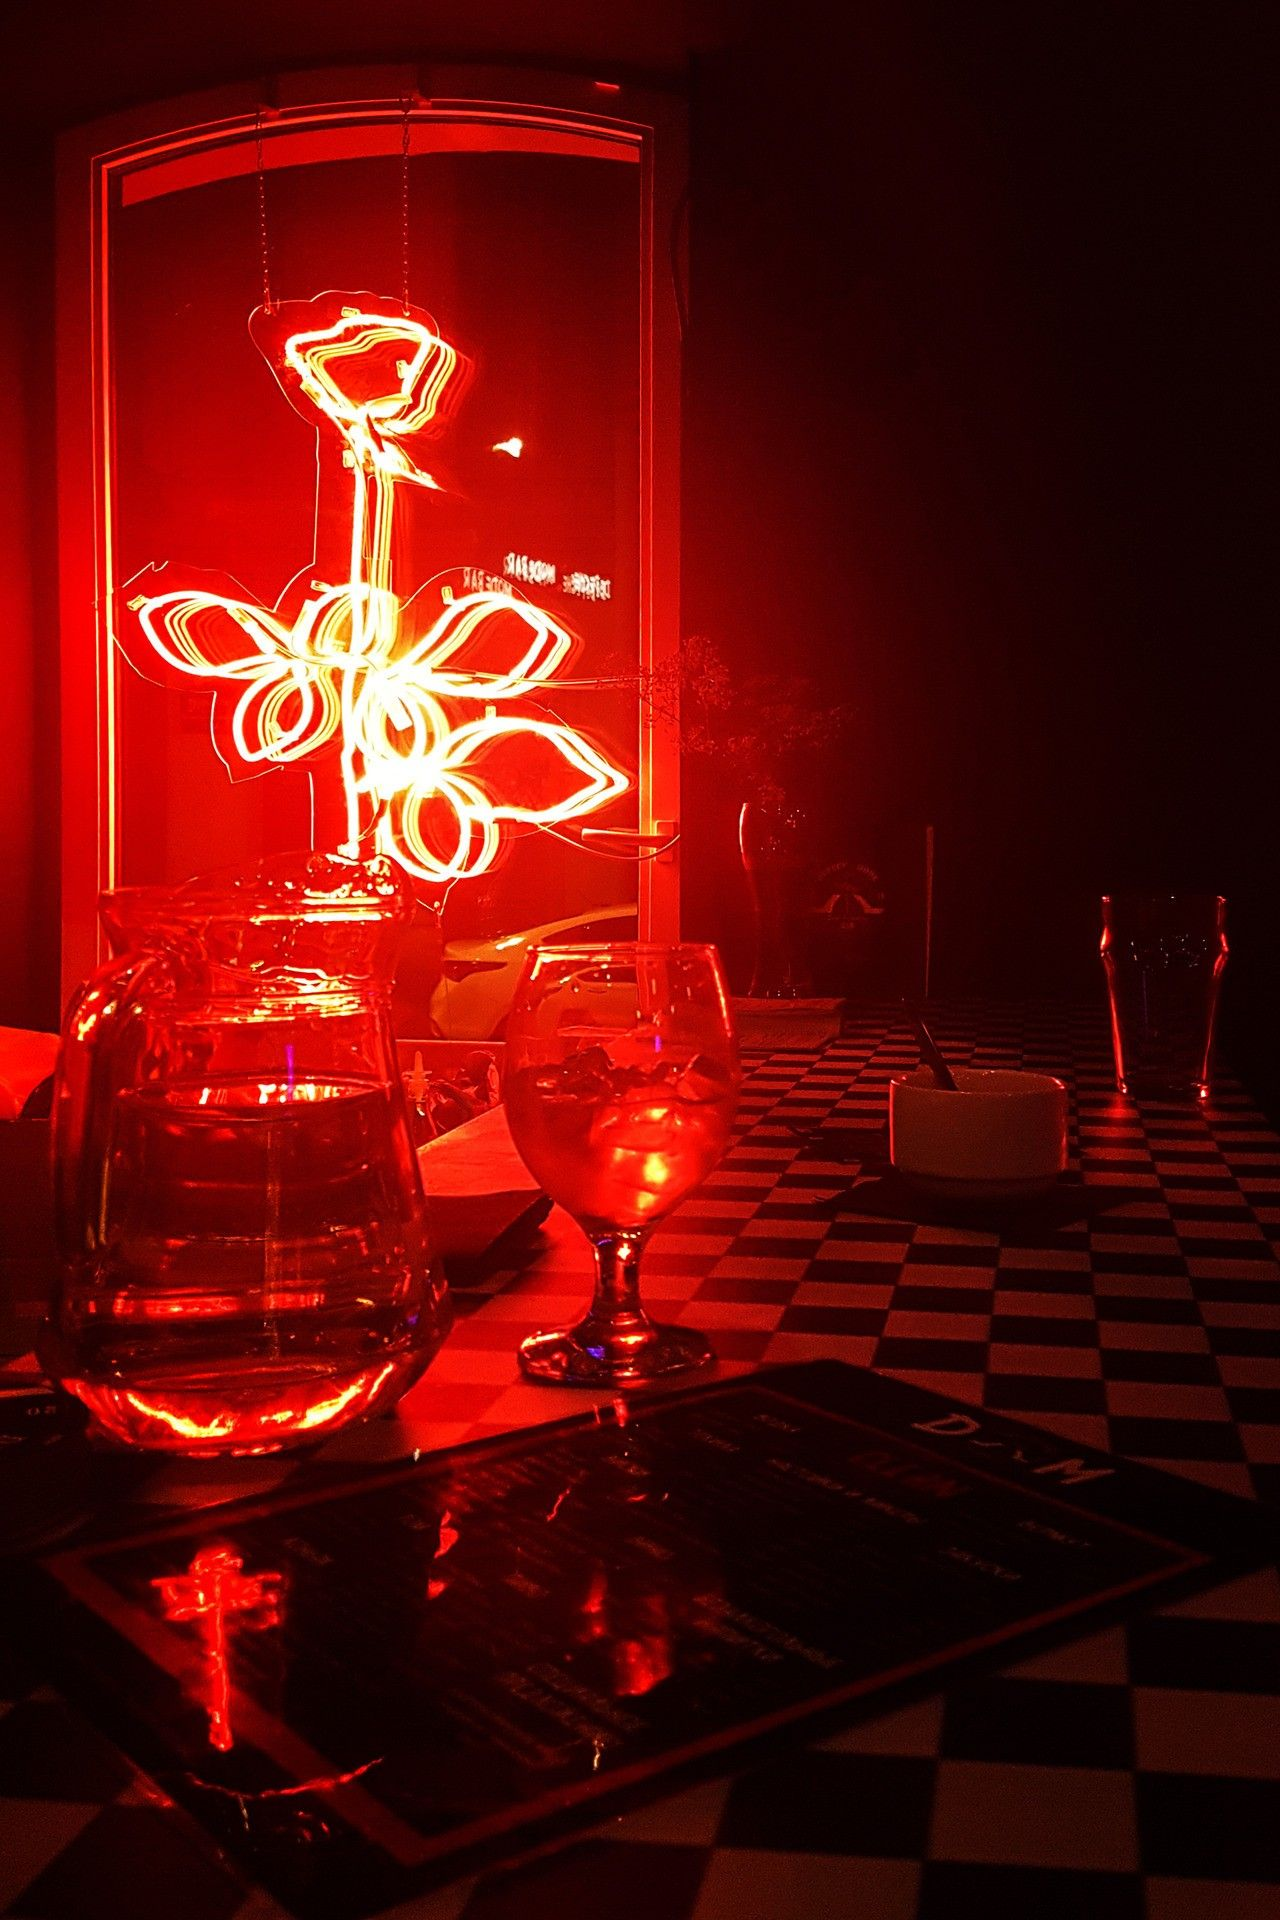 Pin by kendall on aesthetic Artsy photos, Neon aesthetic